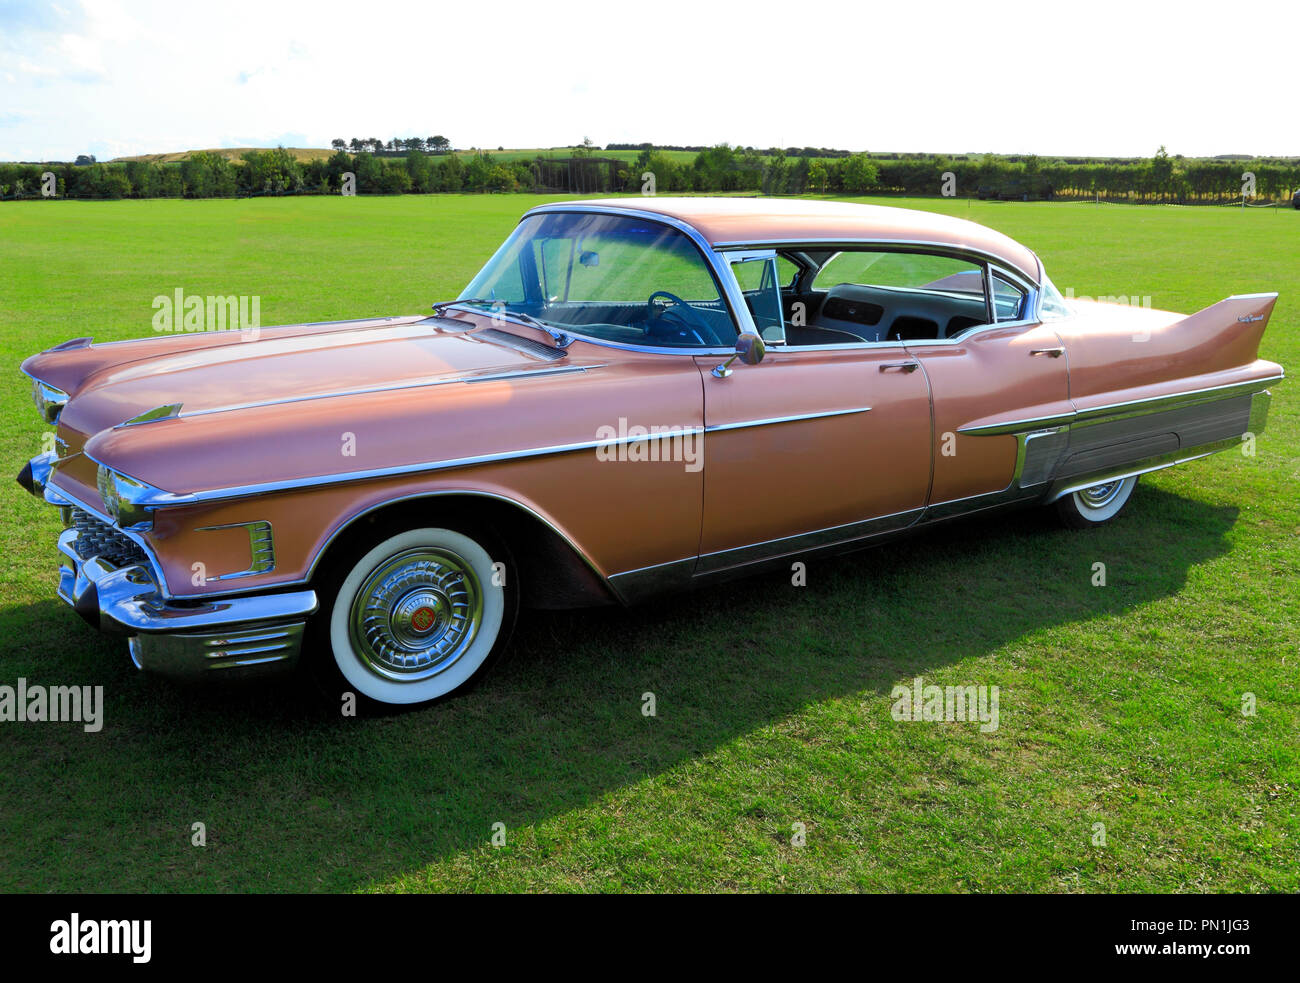 Pink Cadillac,  Fleetwood, classic American car, automobile - Stock Image